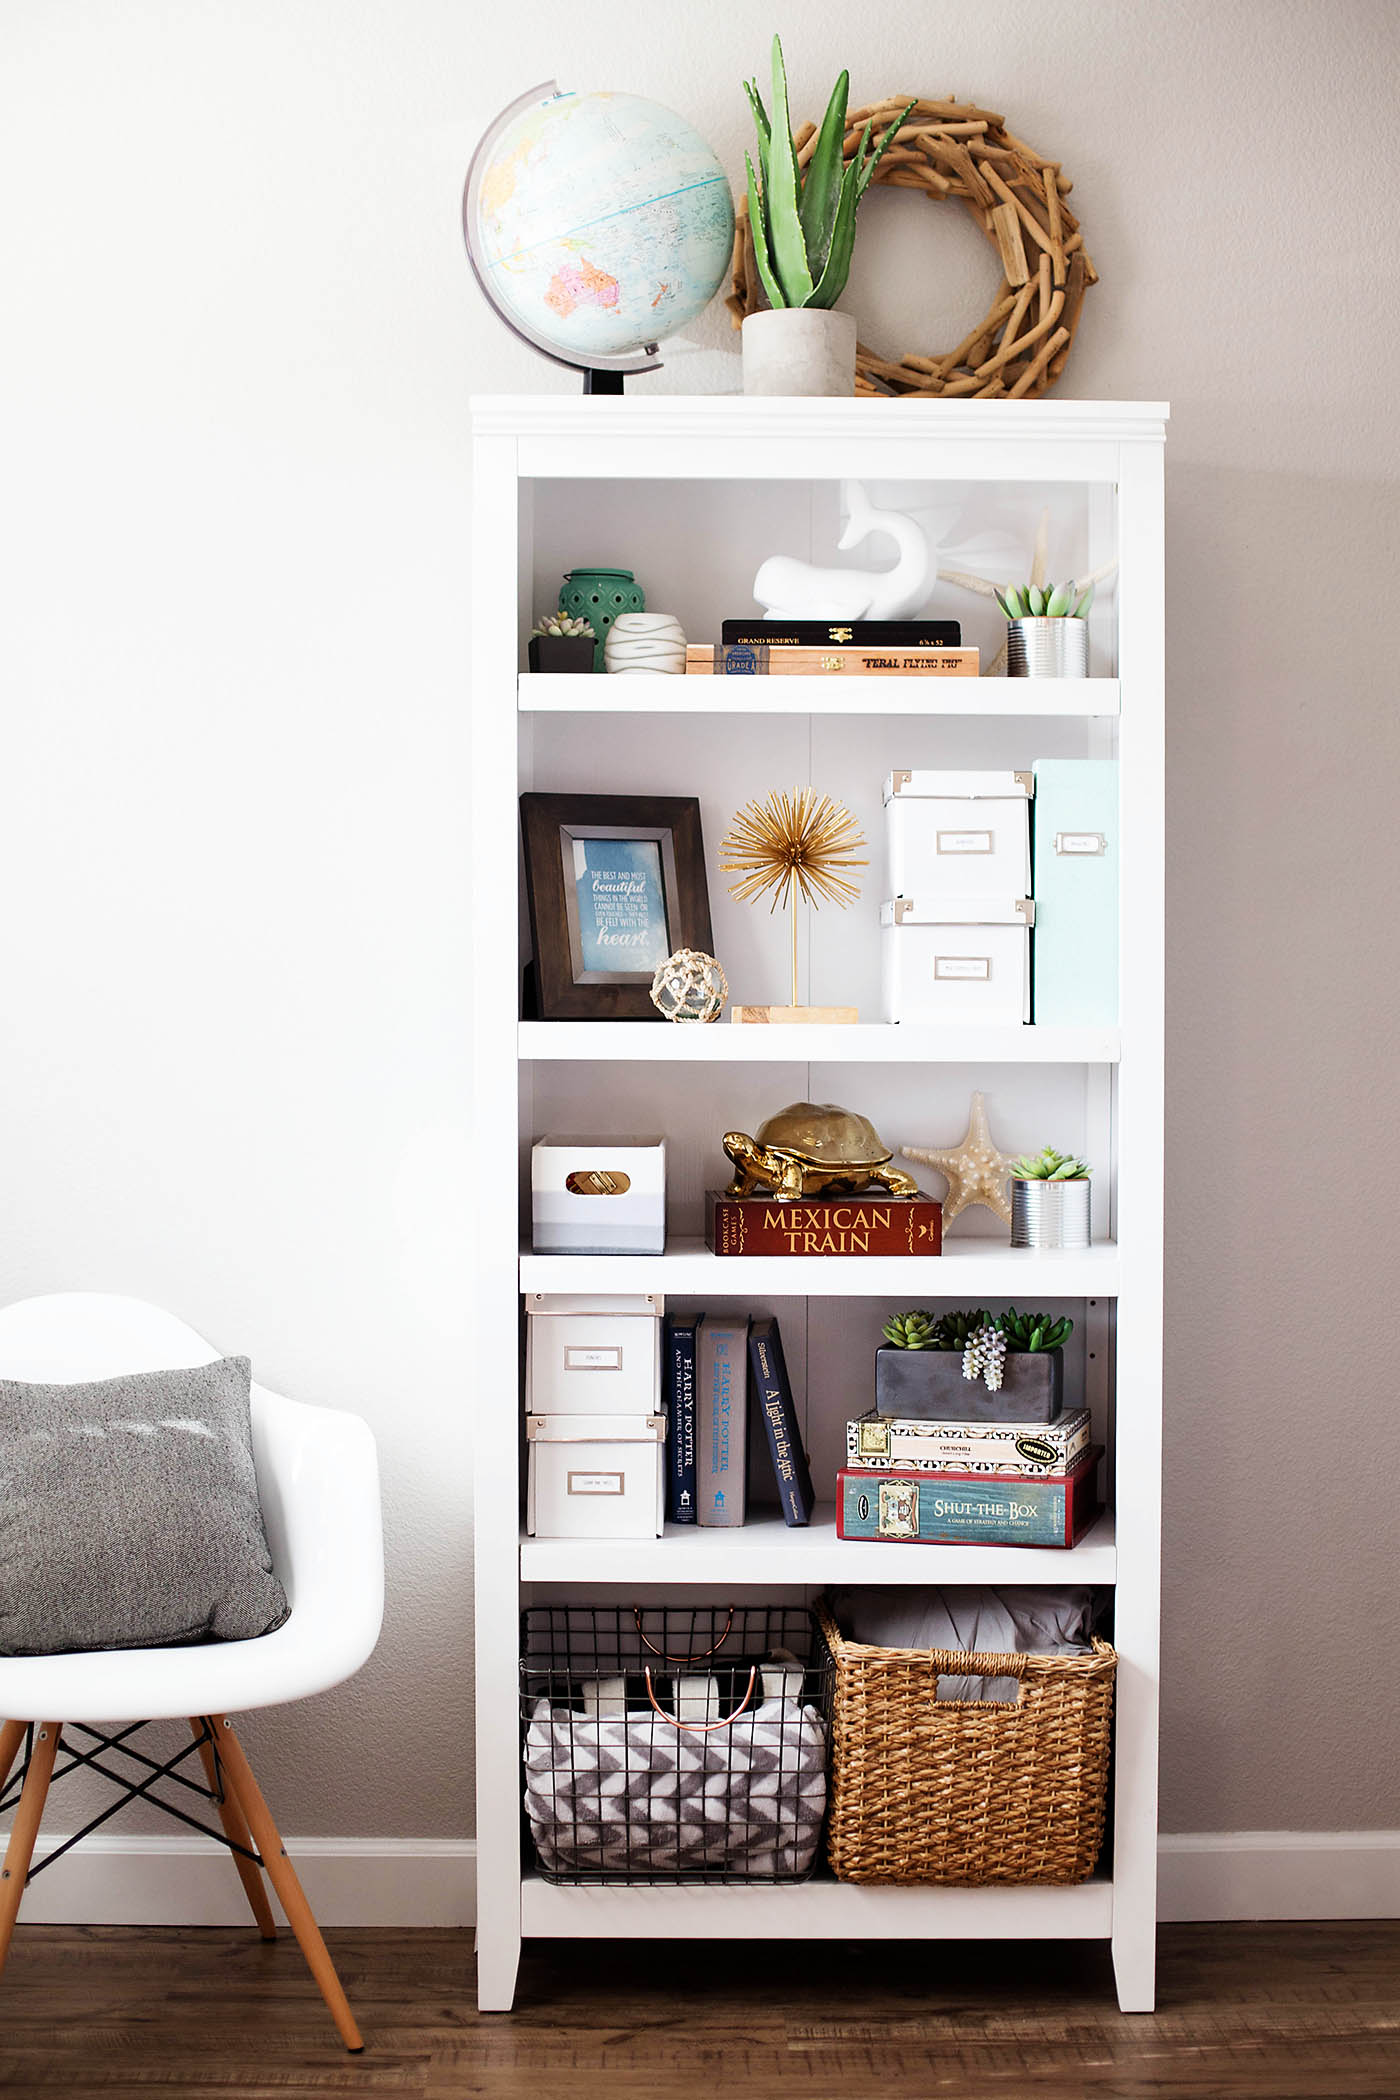 Bookshelf Styling Tips for High Traffic Areas